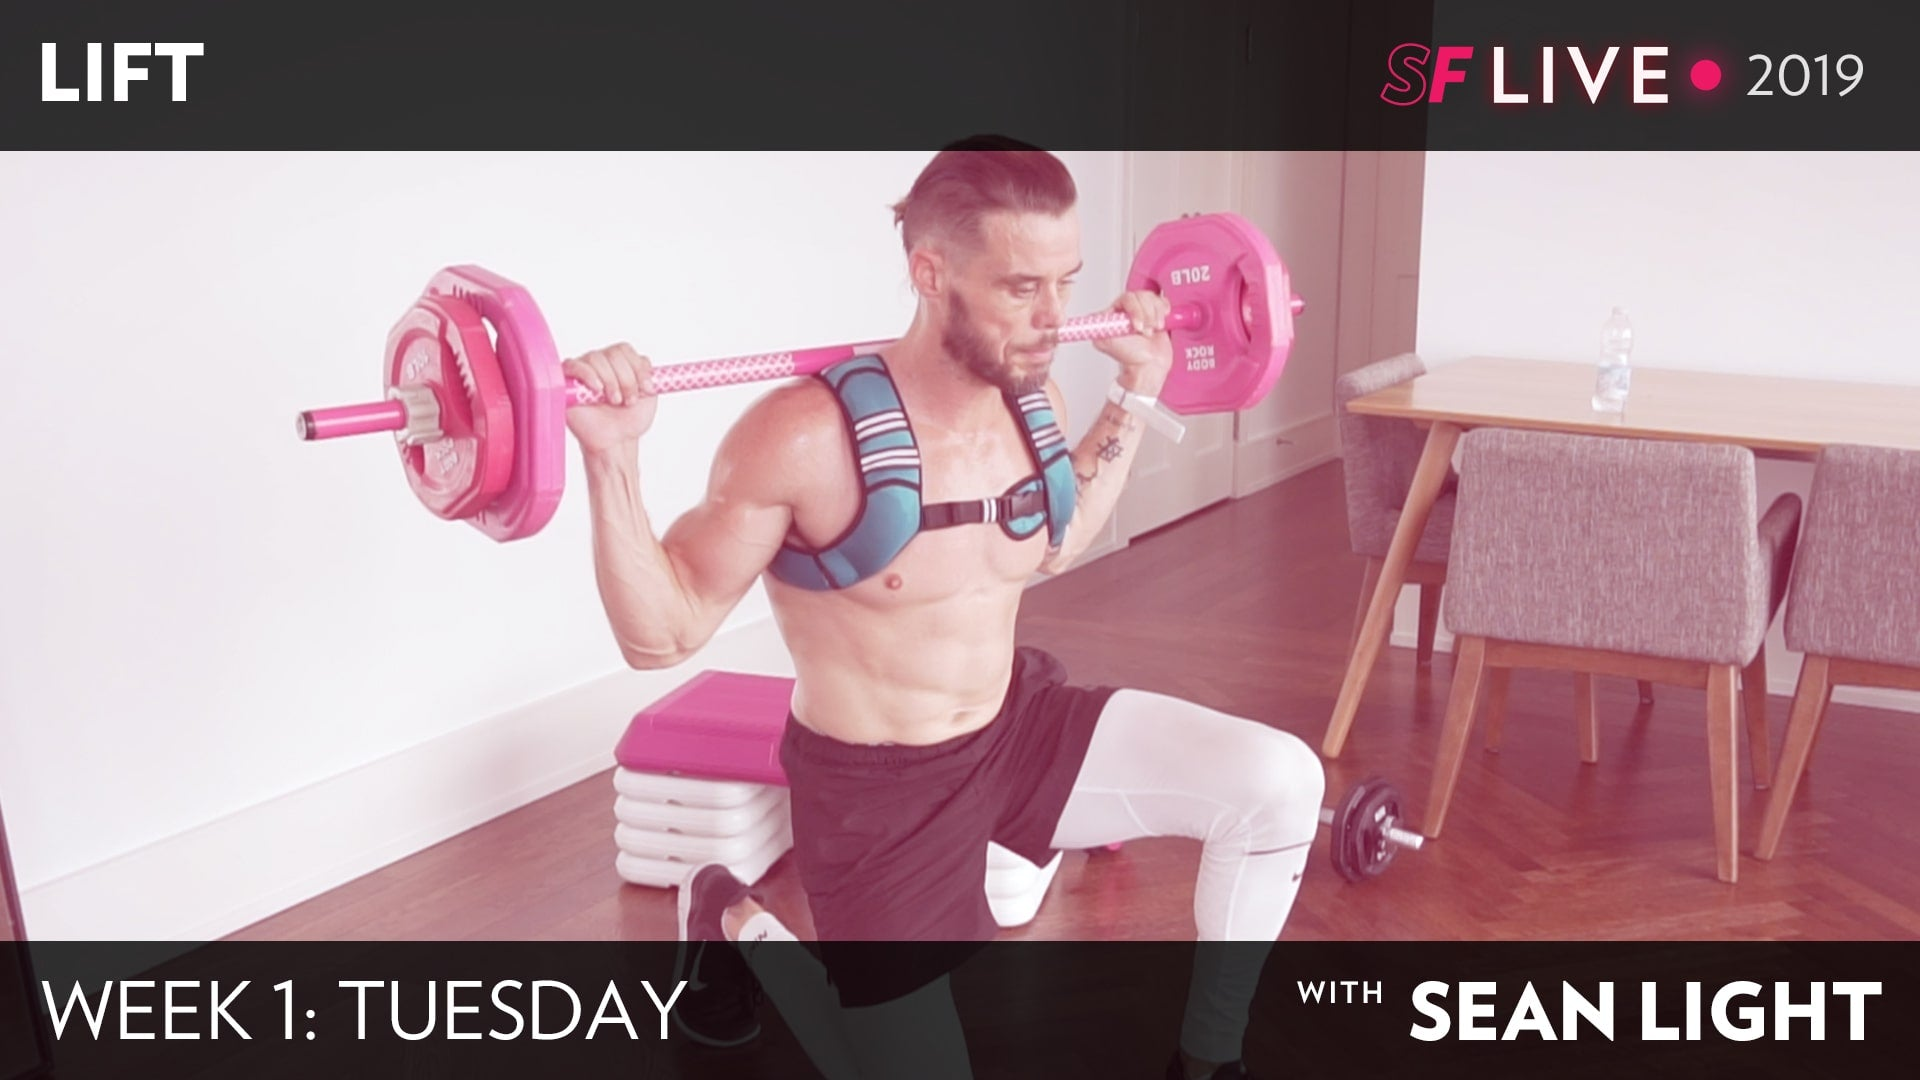 LIFT Workout with Sean Light - Tuesday Week 1